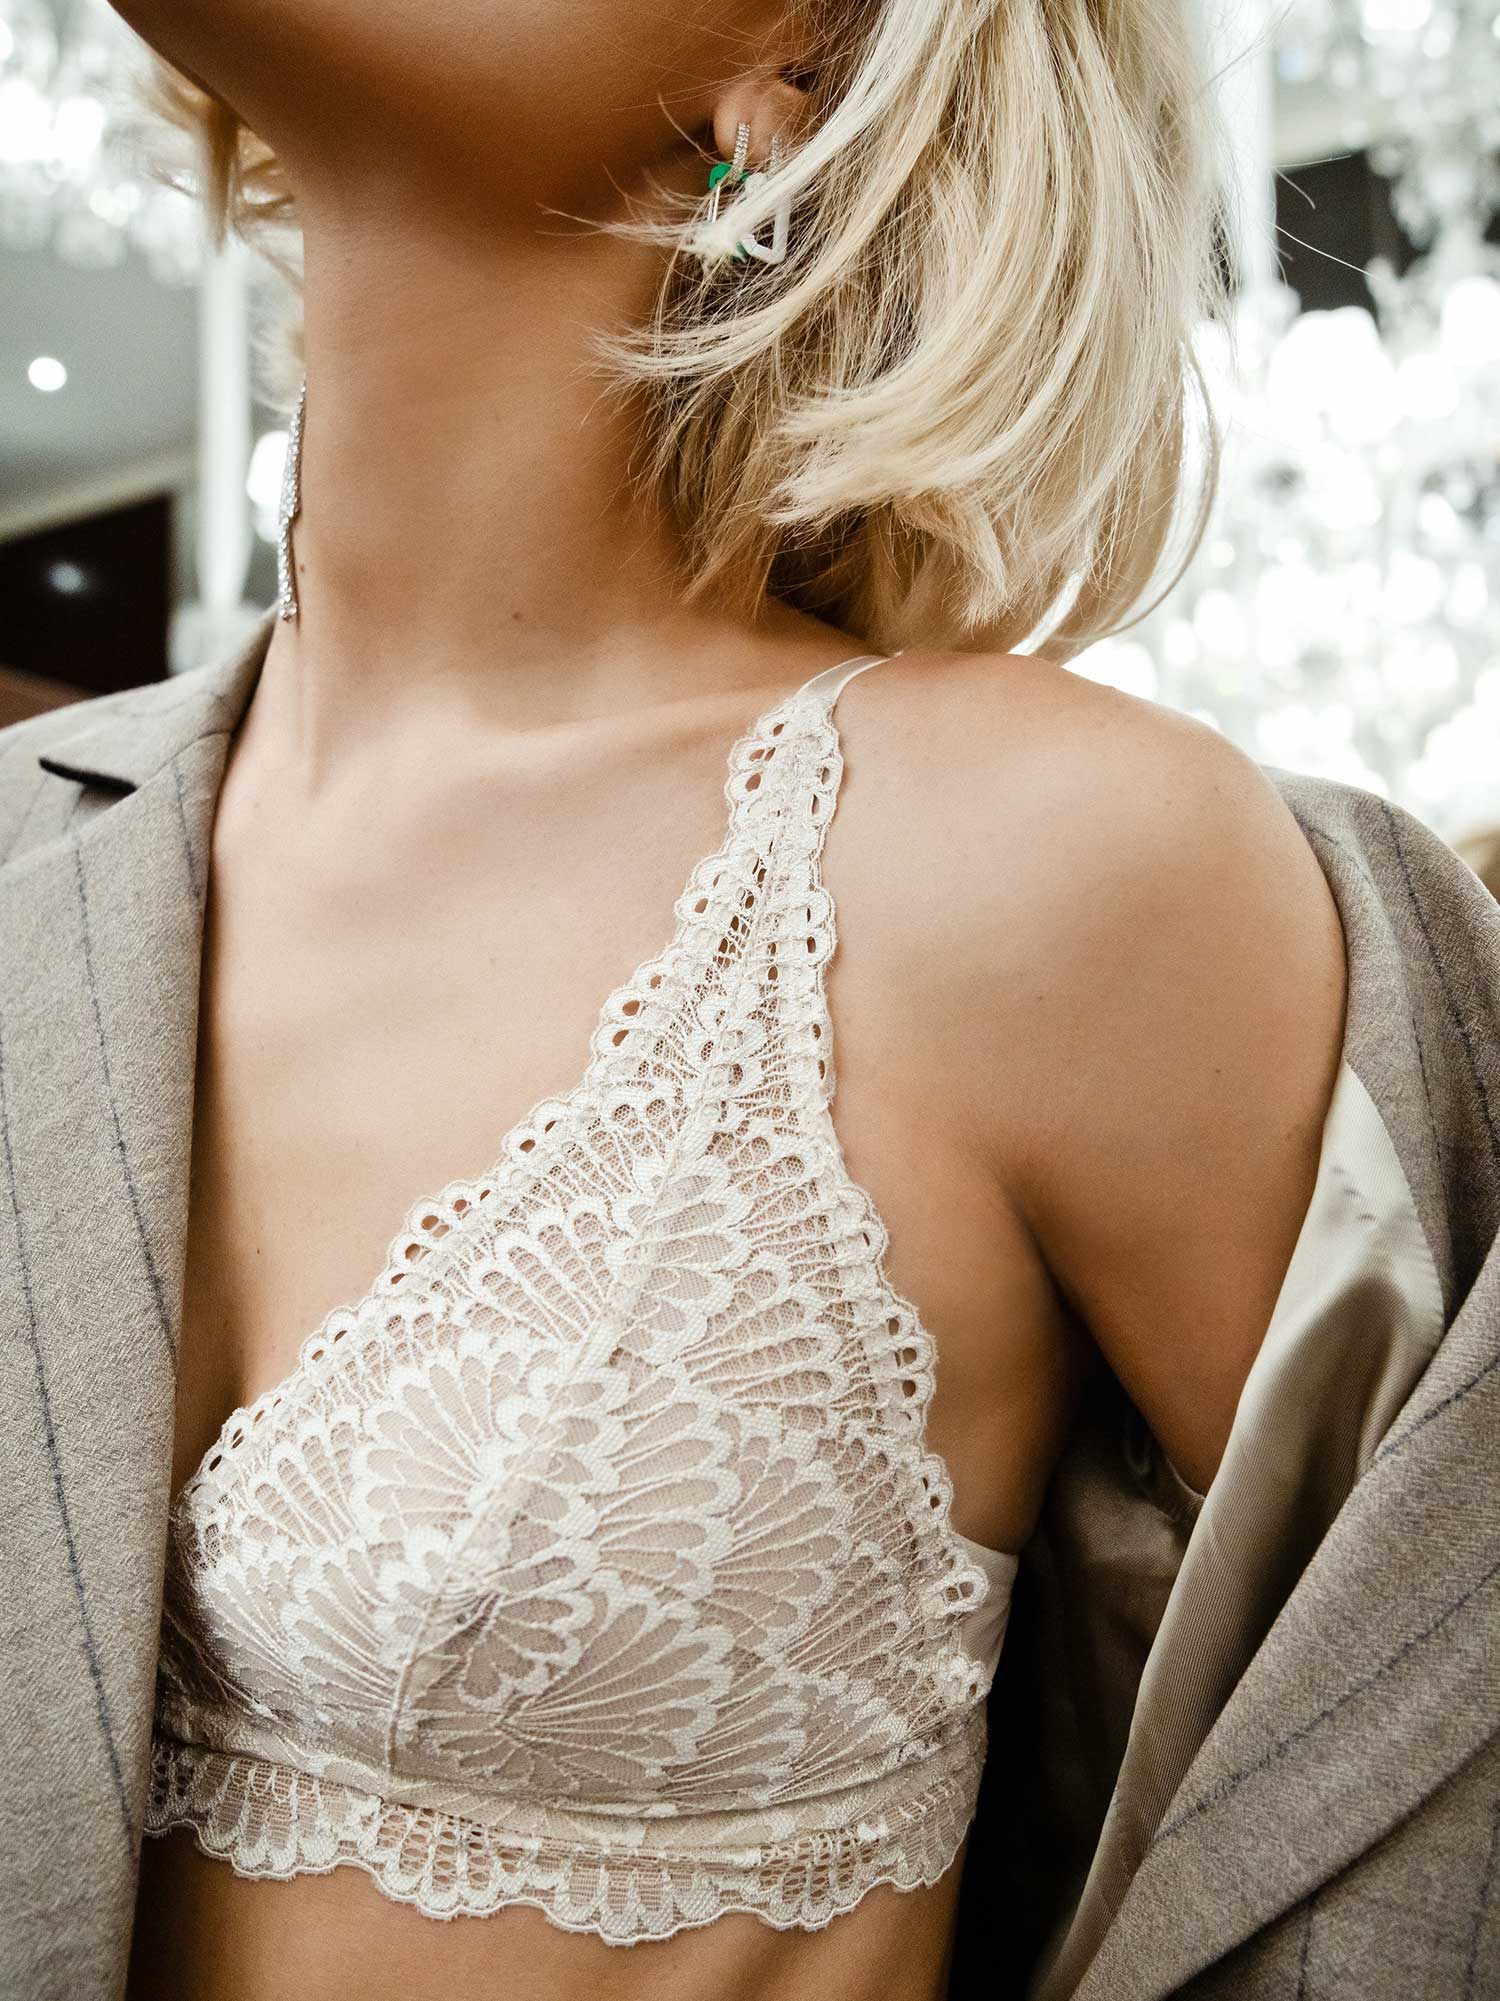 Viktoria Rader with Mey triangle bra from Legendary series in color New Pearl   mey®